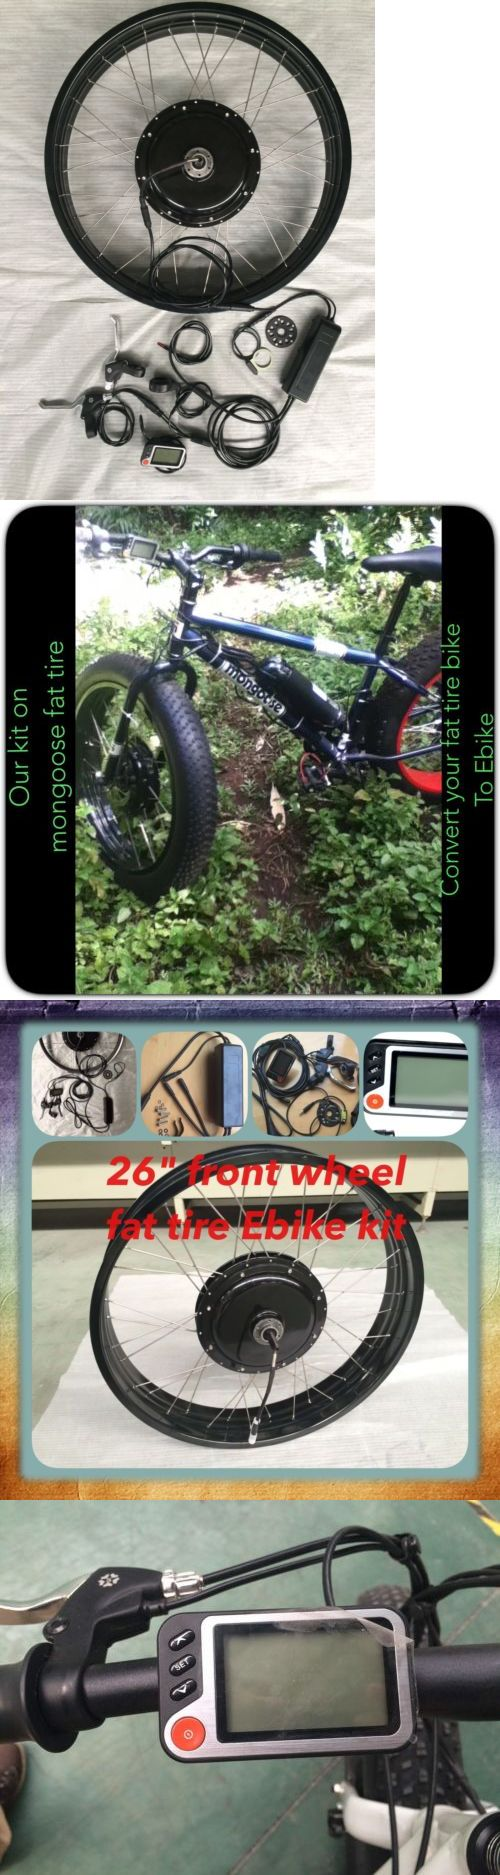 Electric Bicycle Components 177814: Electric Fat Tire Conversion Kit ,Electric Bike,36V 500 W 26 Front Wheel -> BUY IT NOW ONLY: $299 on eBay!